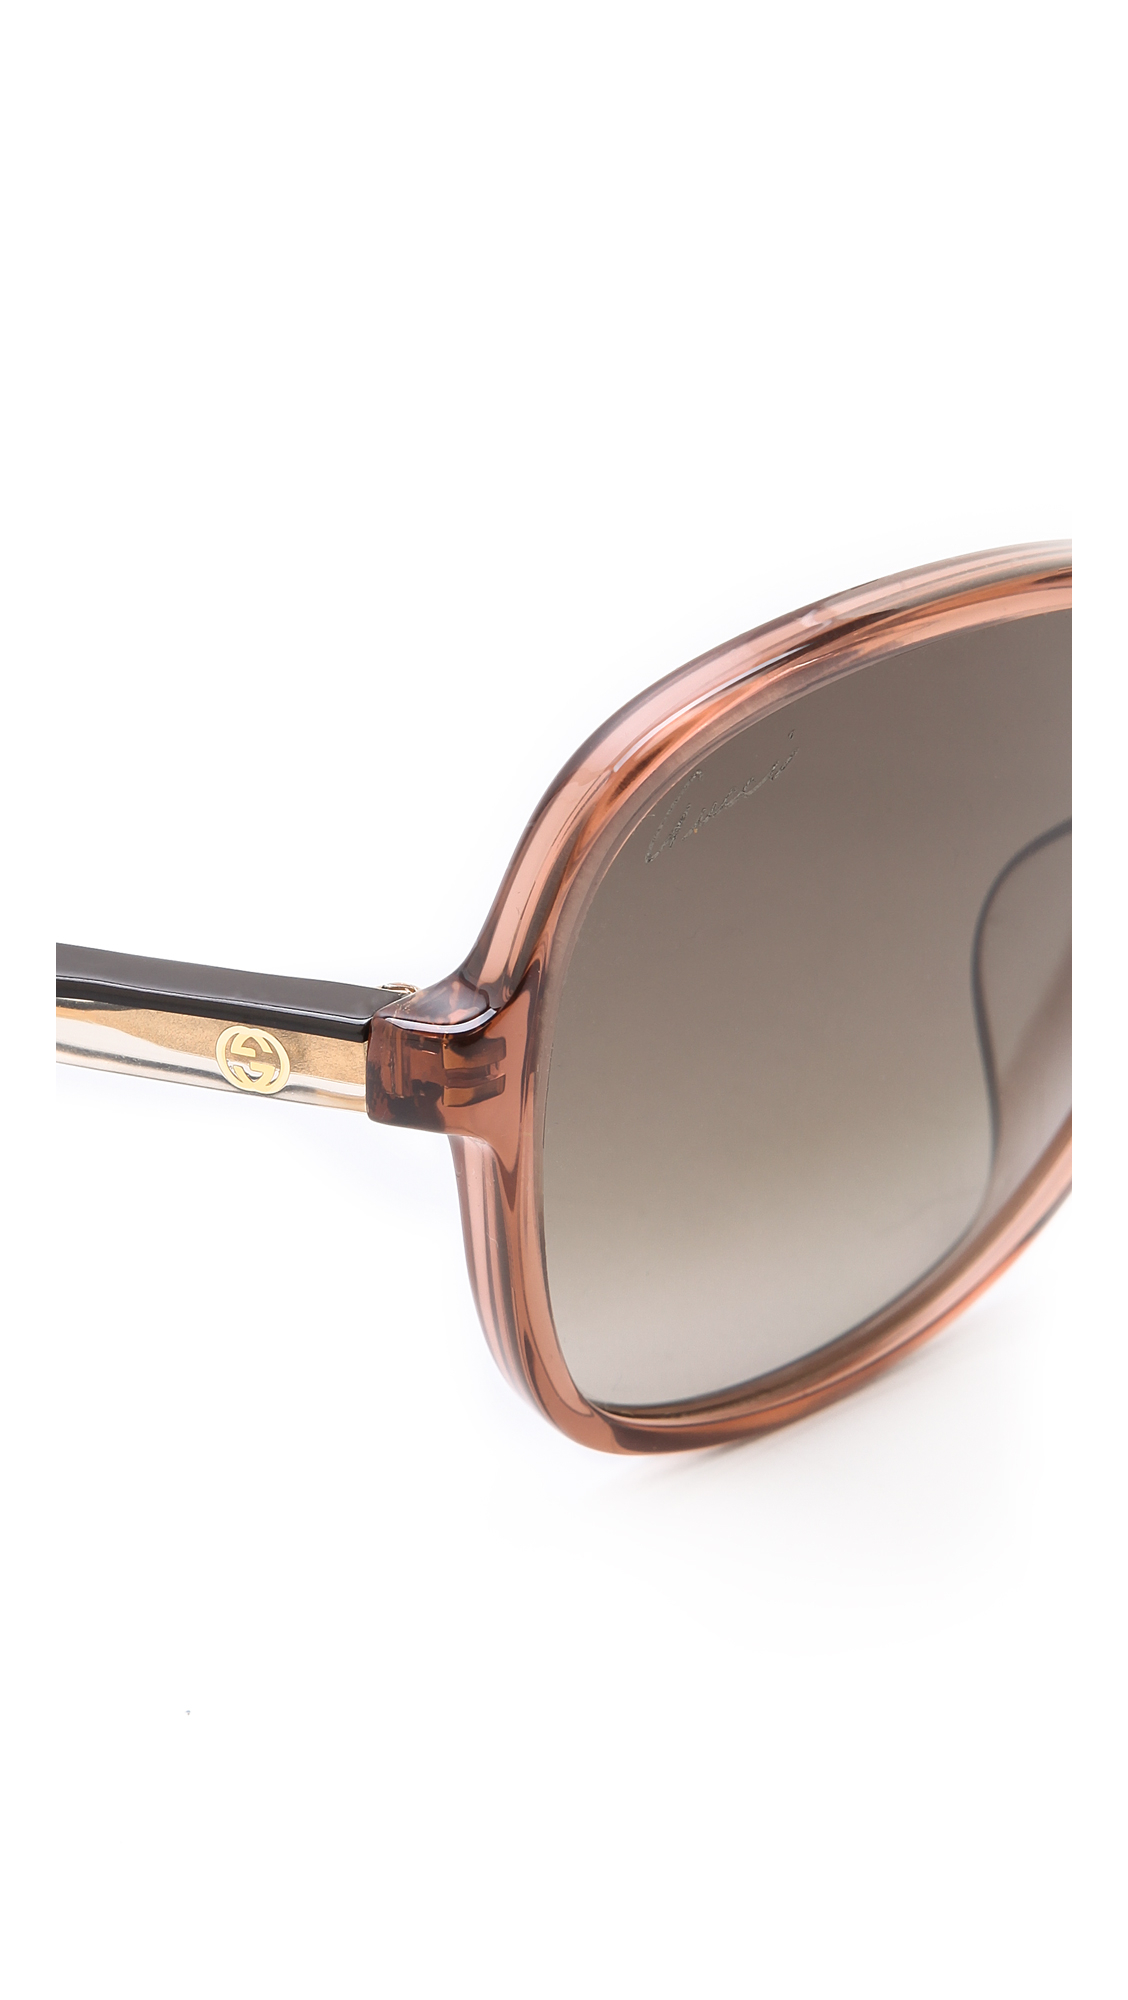 9abc9fca6b7e Gucci Special Fit Glam Sunglasses - Black/Grey Gradient in Brown - Lyst